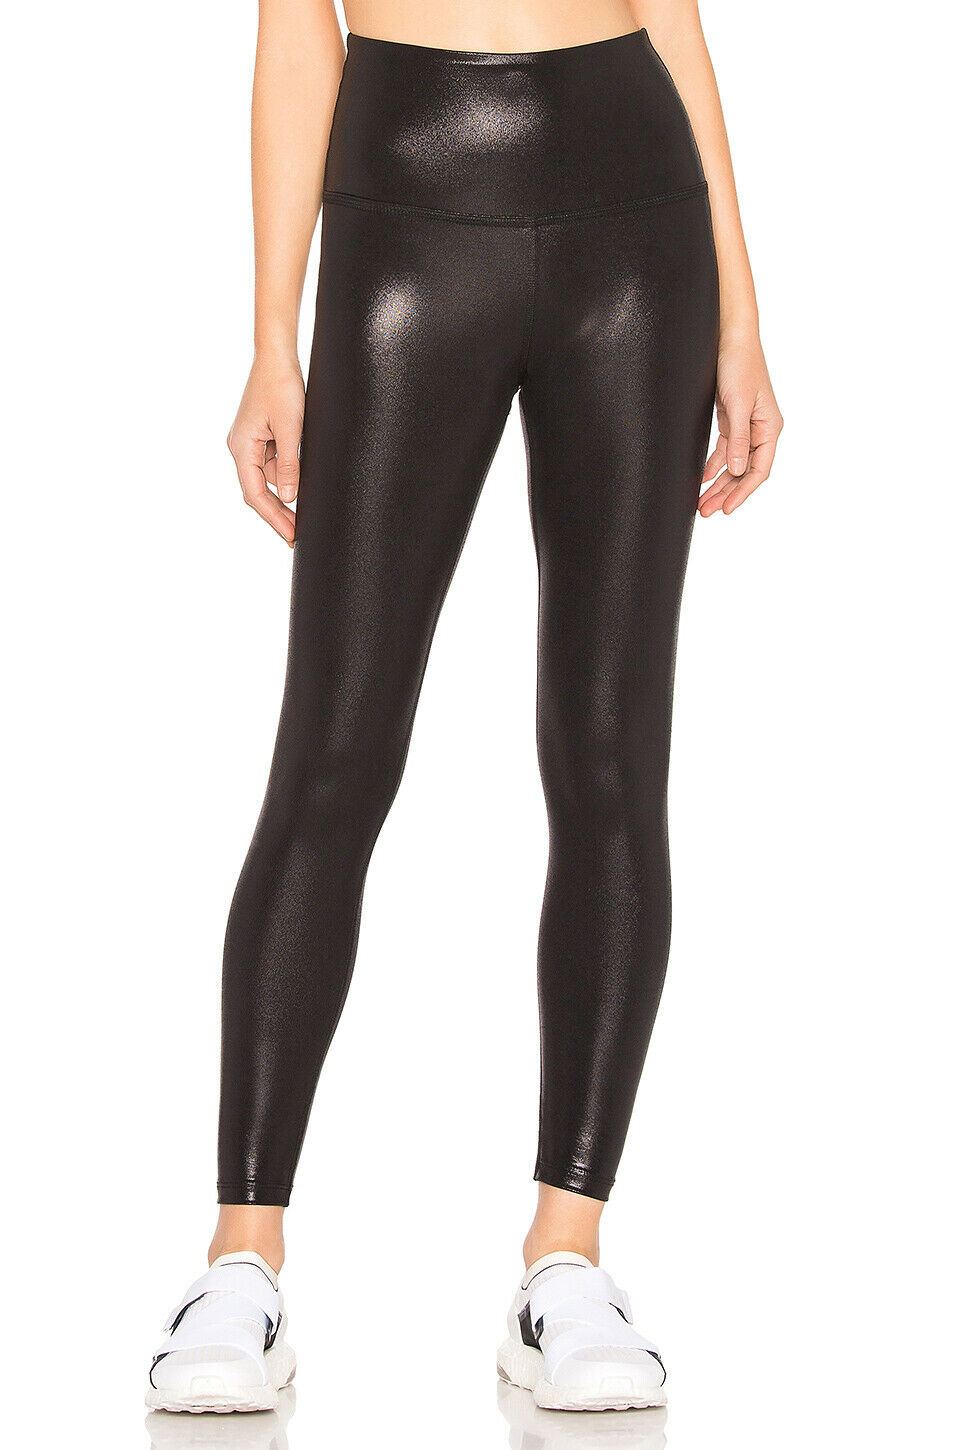 Special Offer: Beyond Yoga Brand Apparel – Pearlized High Waisted Midi Legging